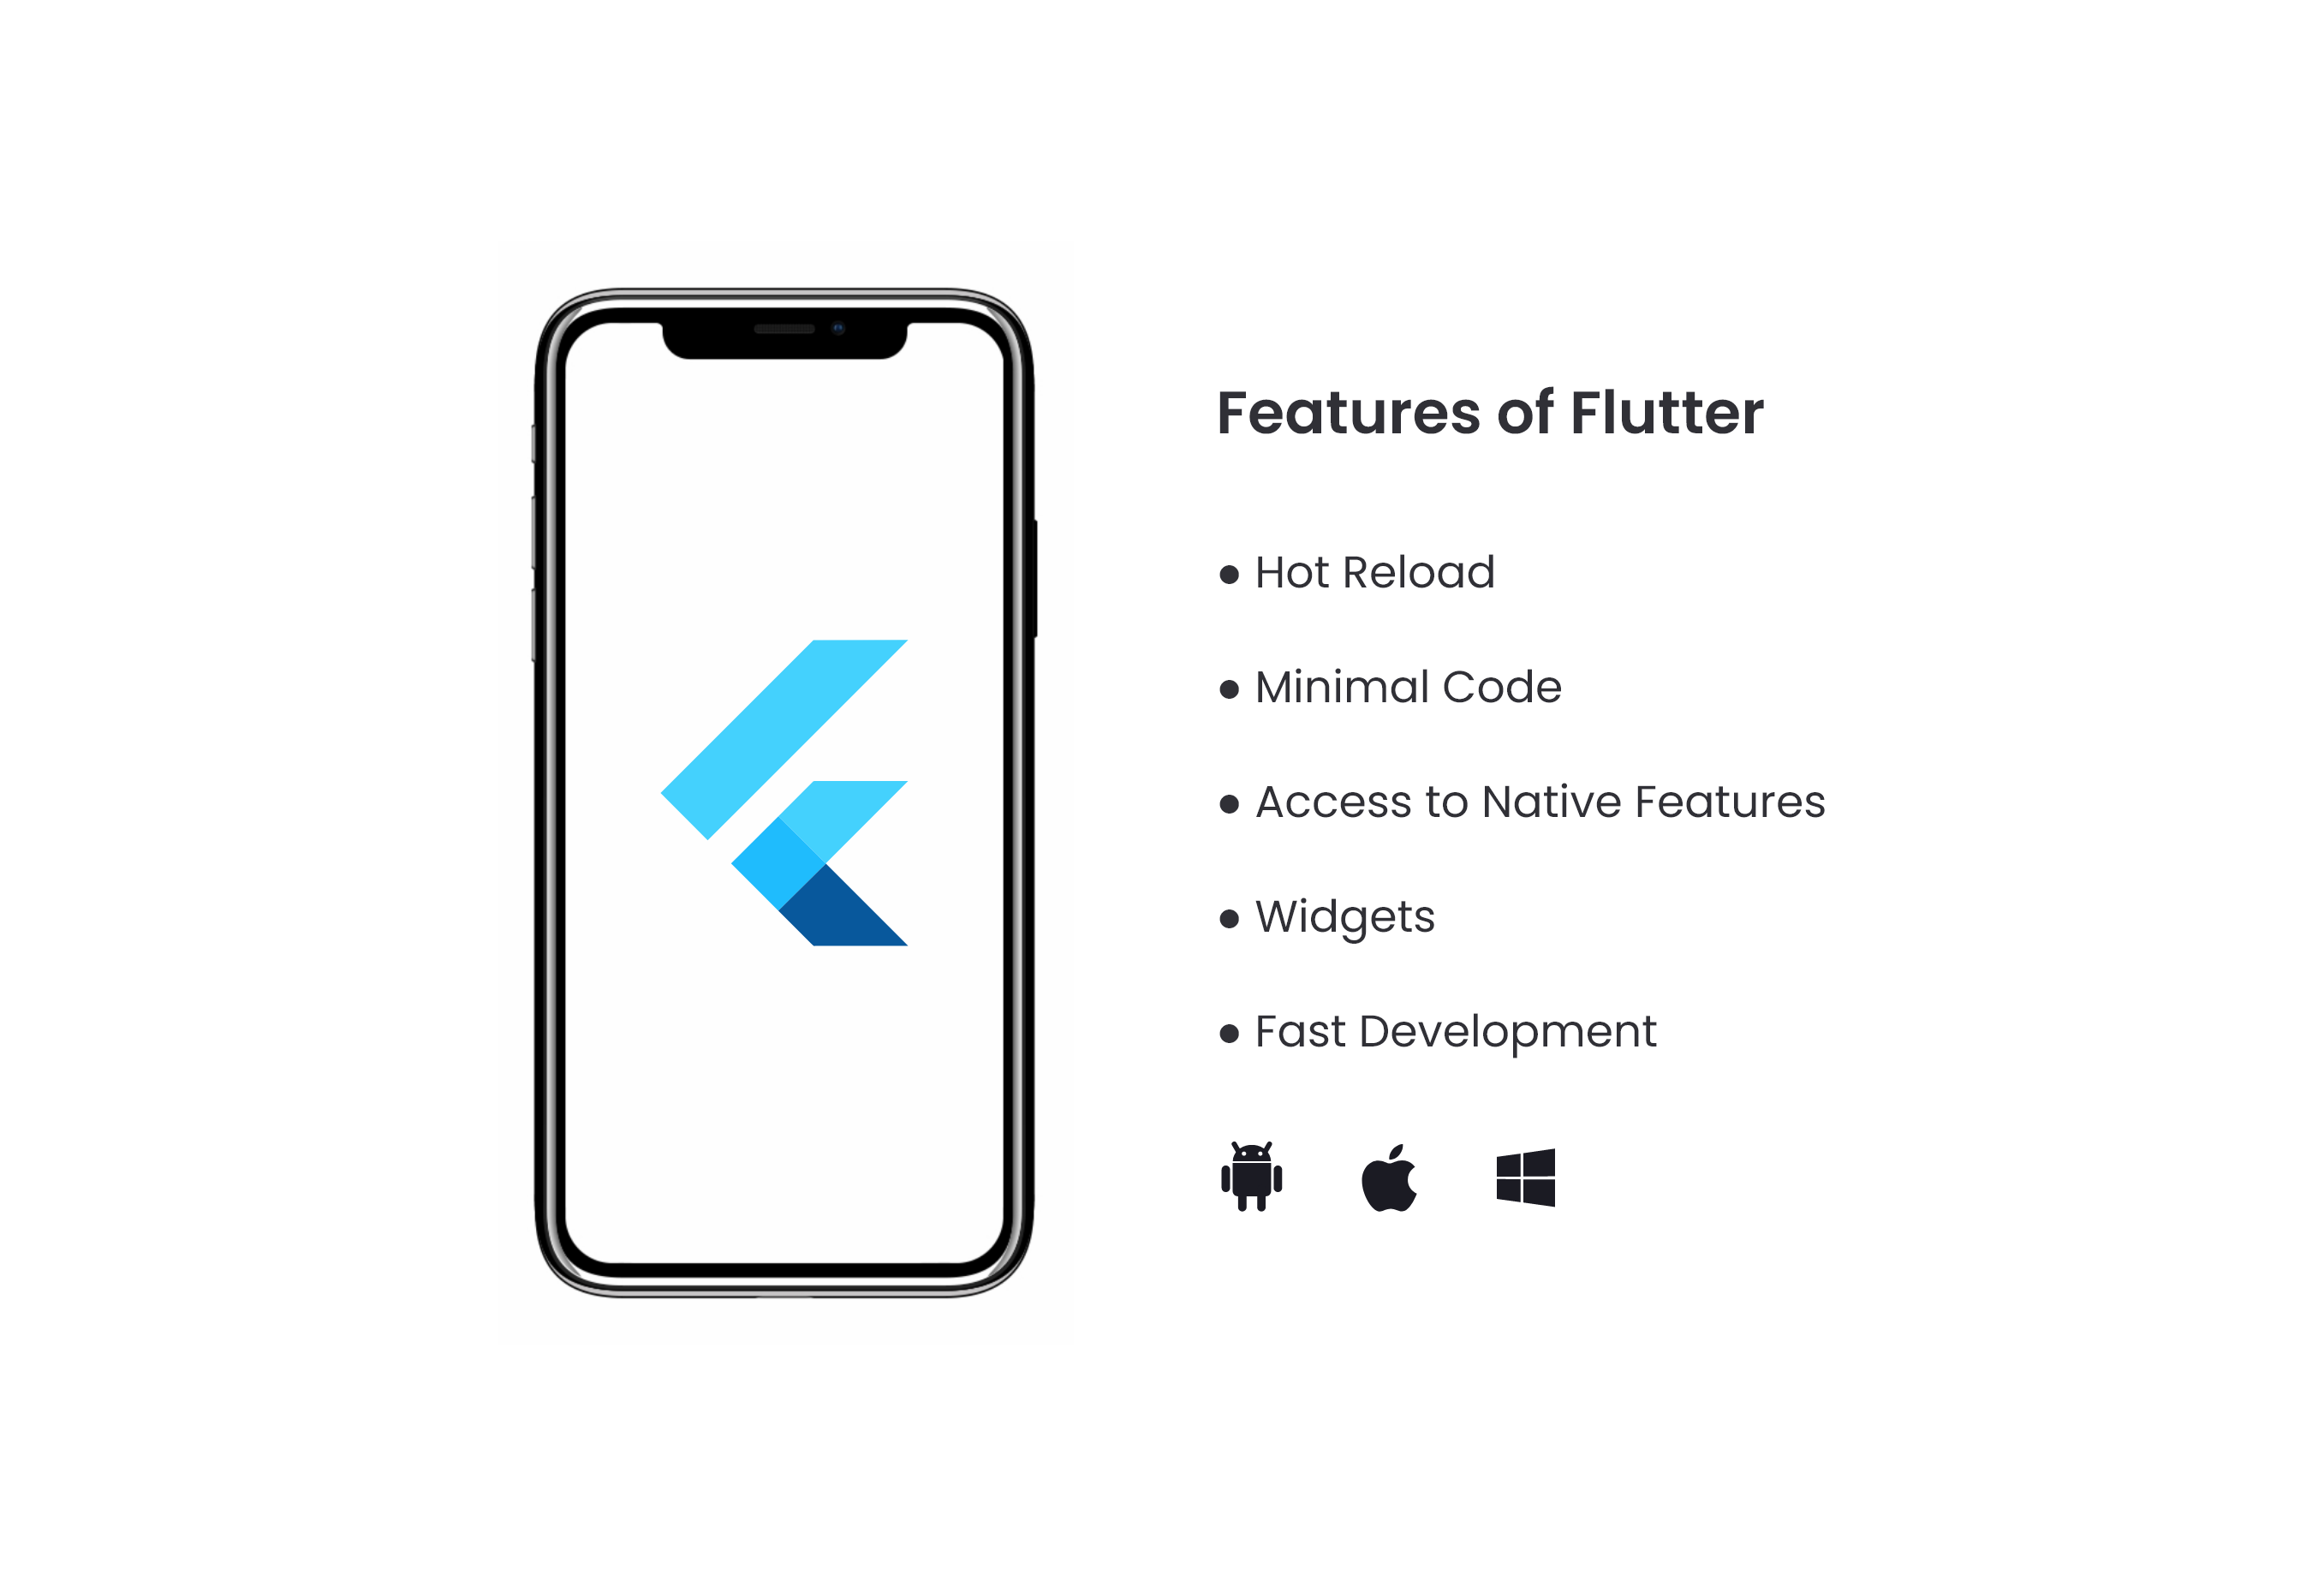 Features of Flutter